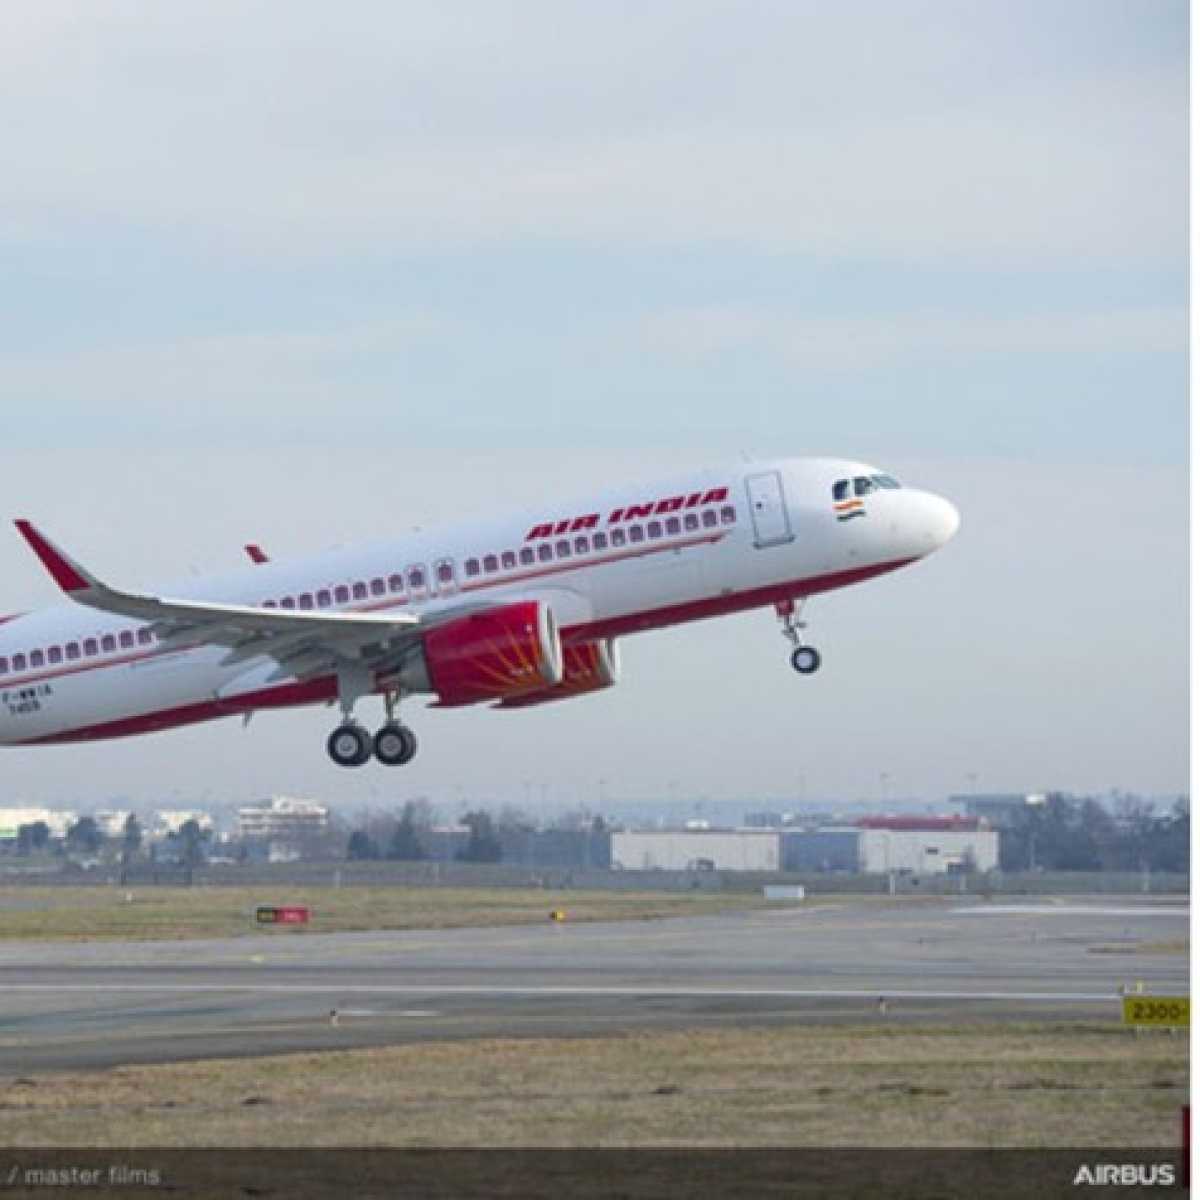 Good news for NRIs: You can now acquire 100% stake in govt-owned Air India